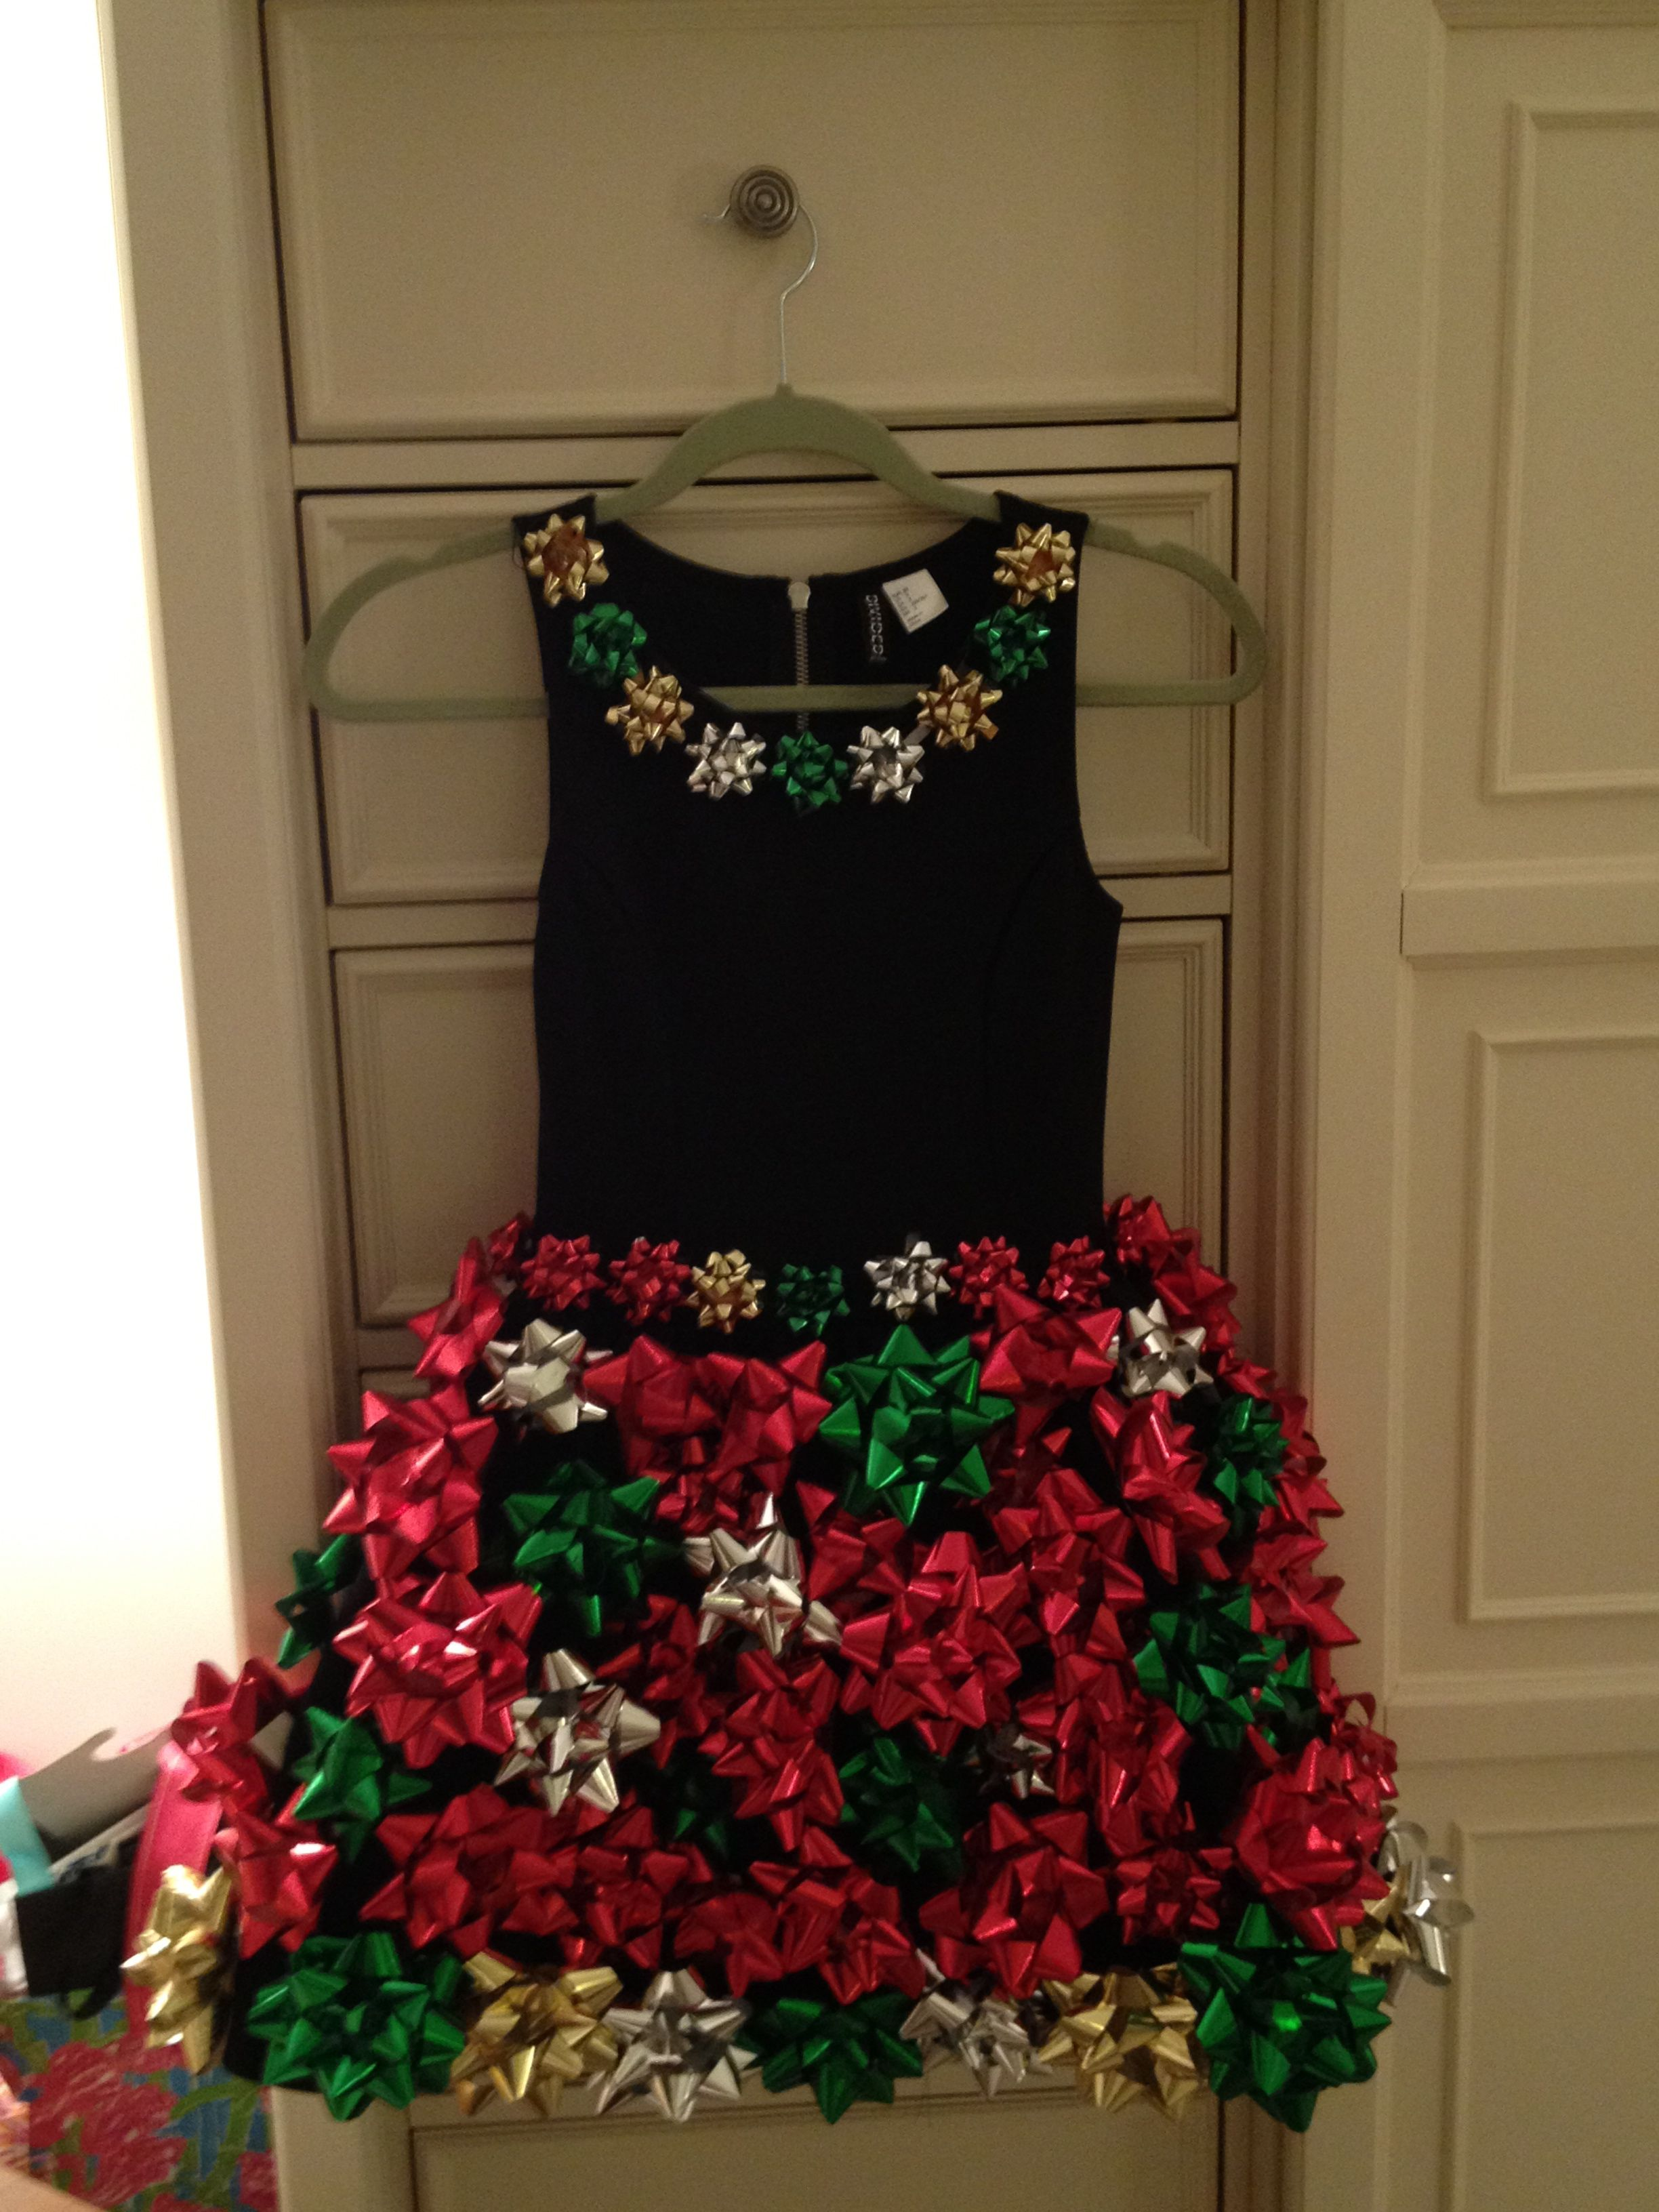 A million bows and 4 days of hand sewing later...Tacky Christmas here I come!